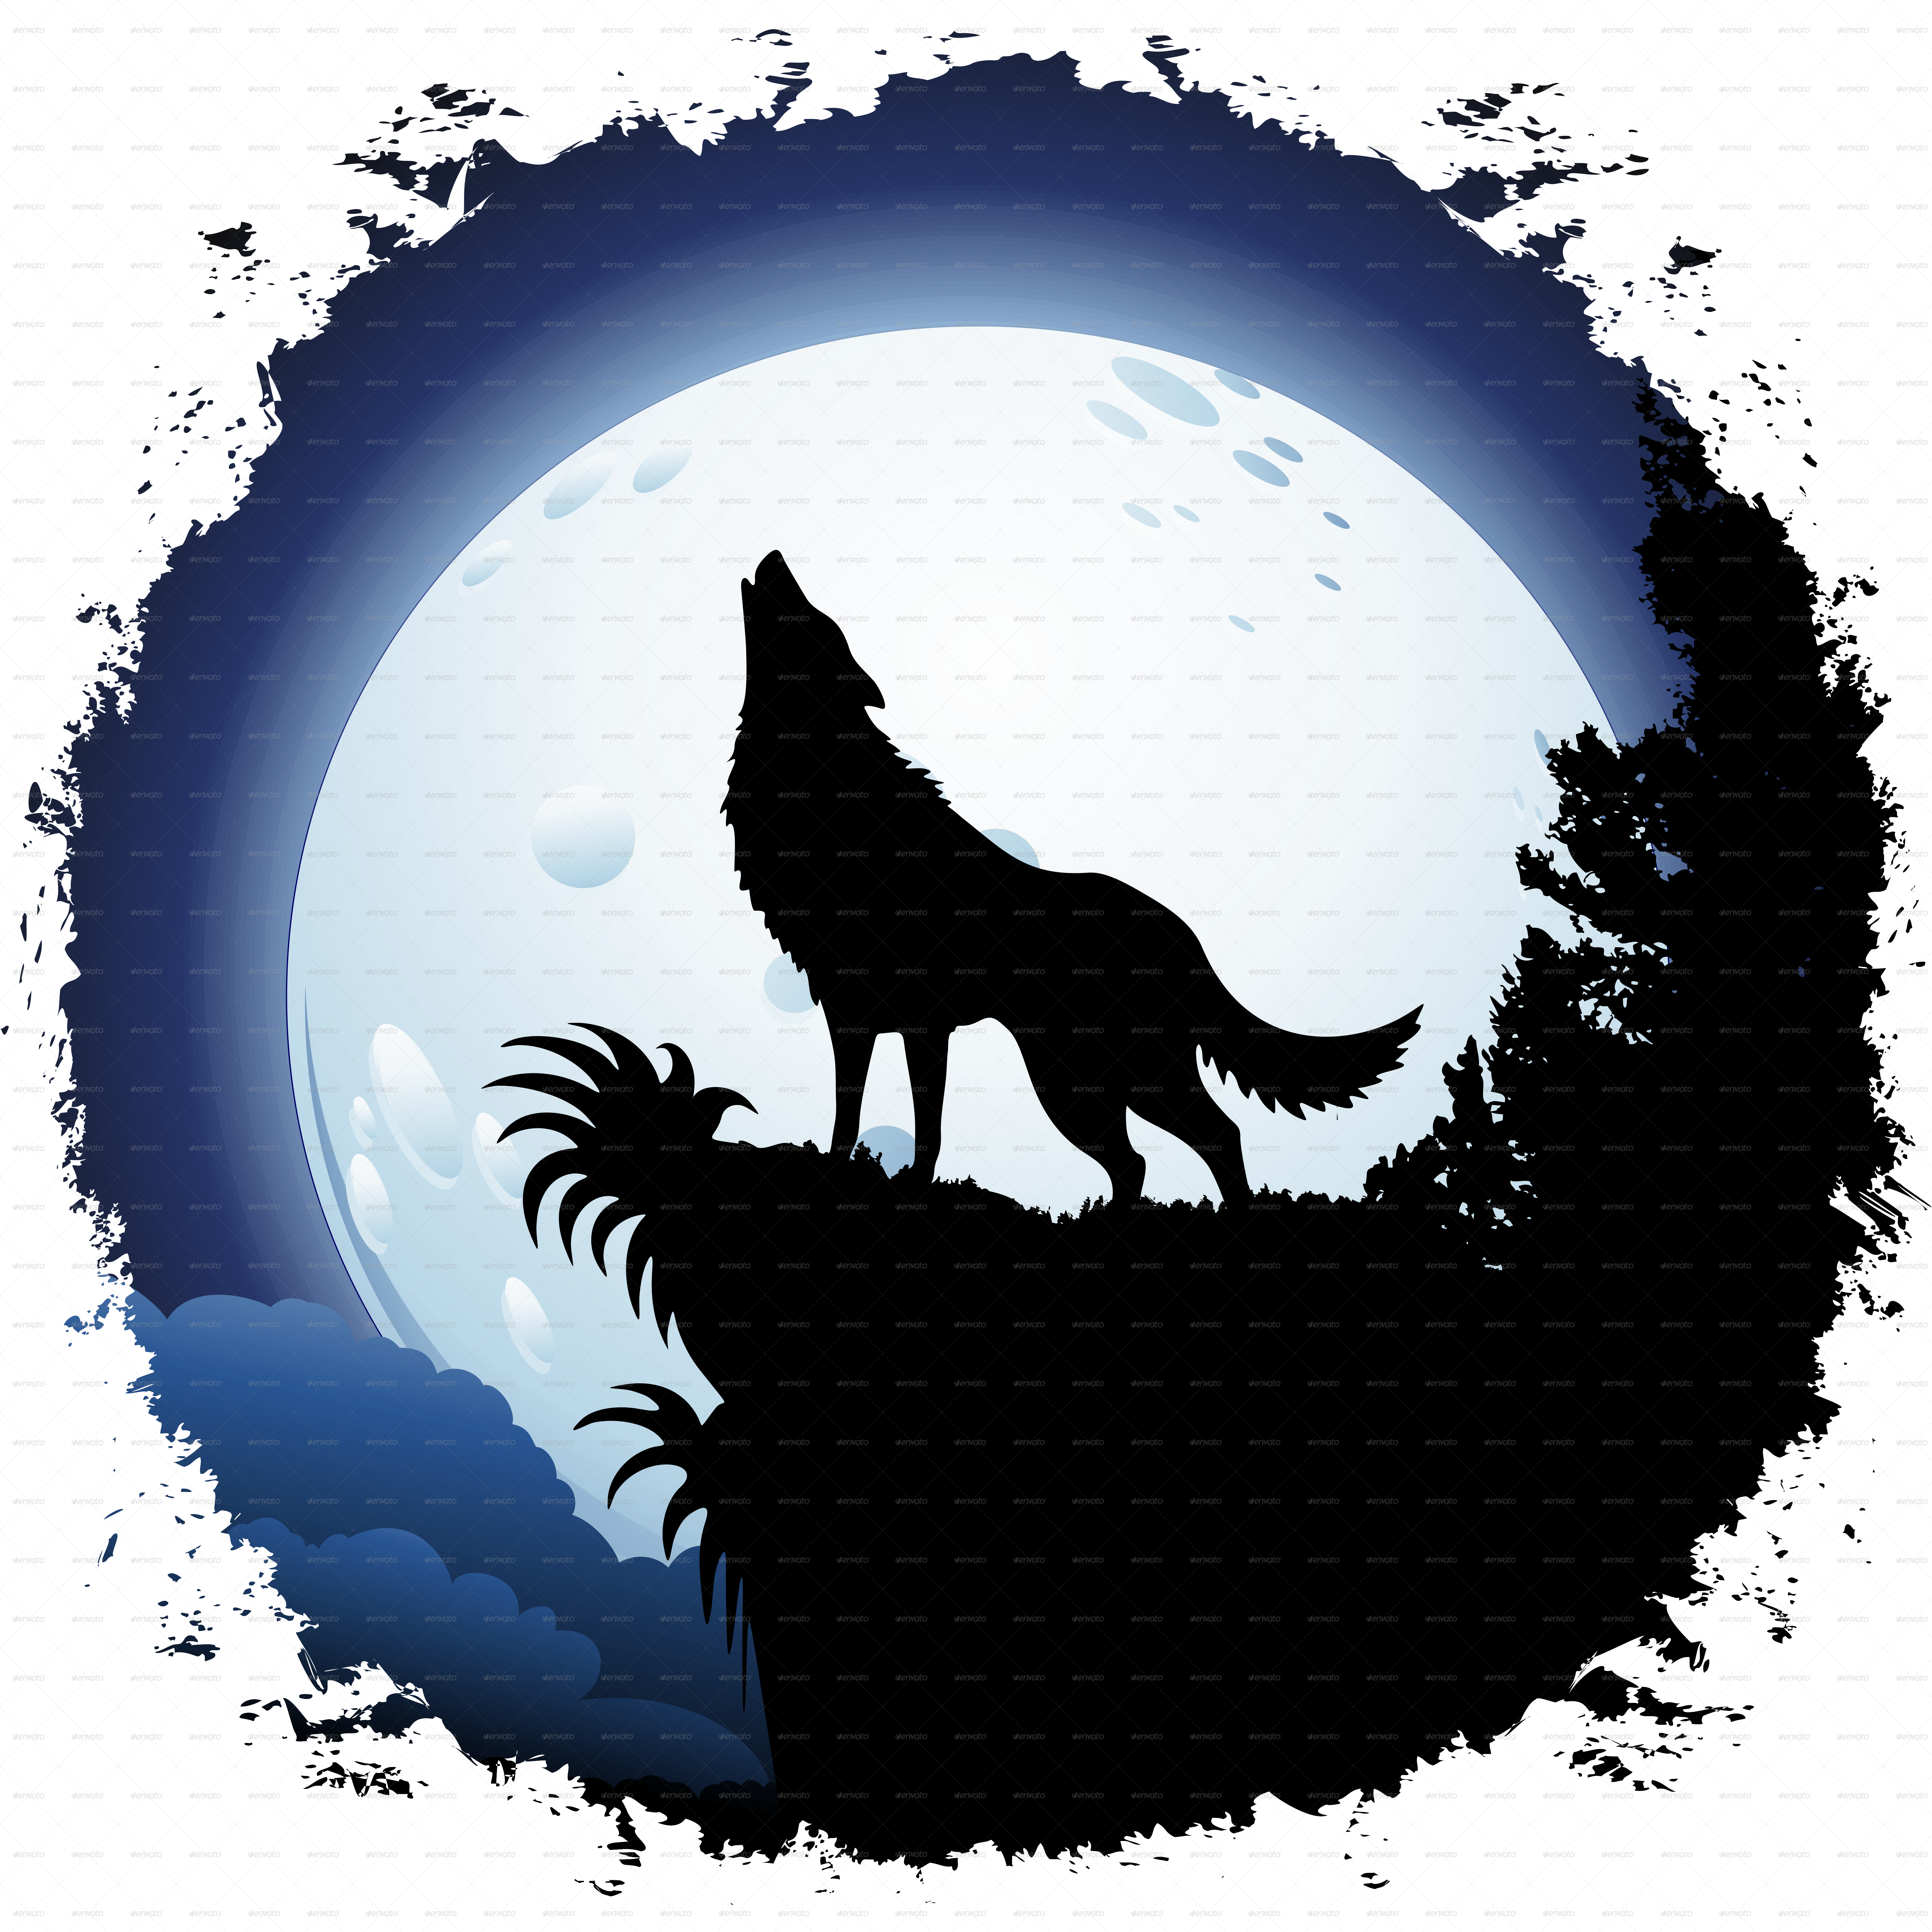 Clipart dog howling at moon jpg royalty free library Silhouette Of A Wolf Howling at GetDrawings.com | Free for personal ... jpg royalty free library